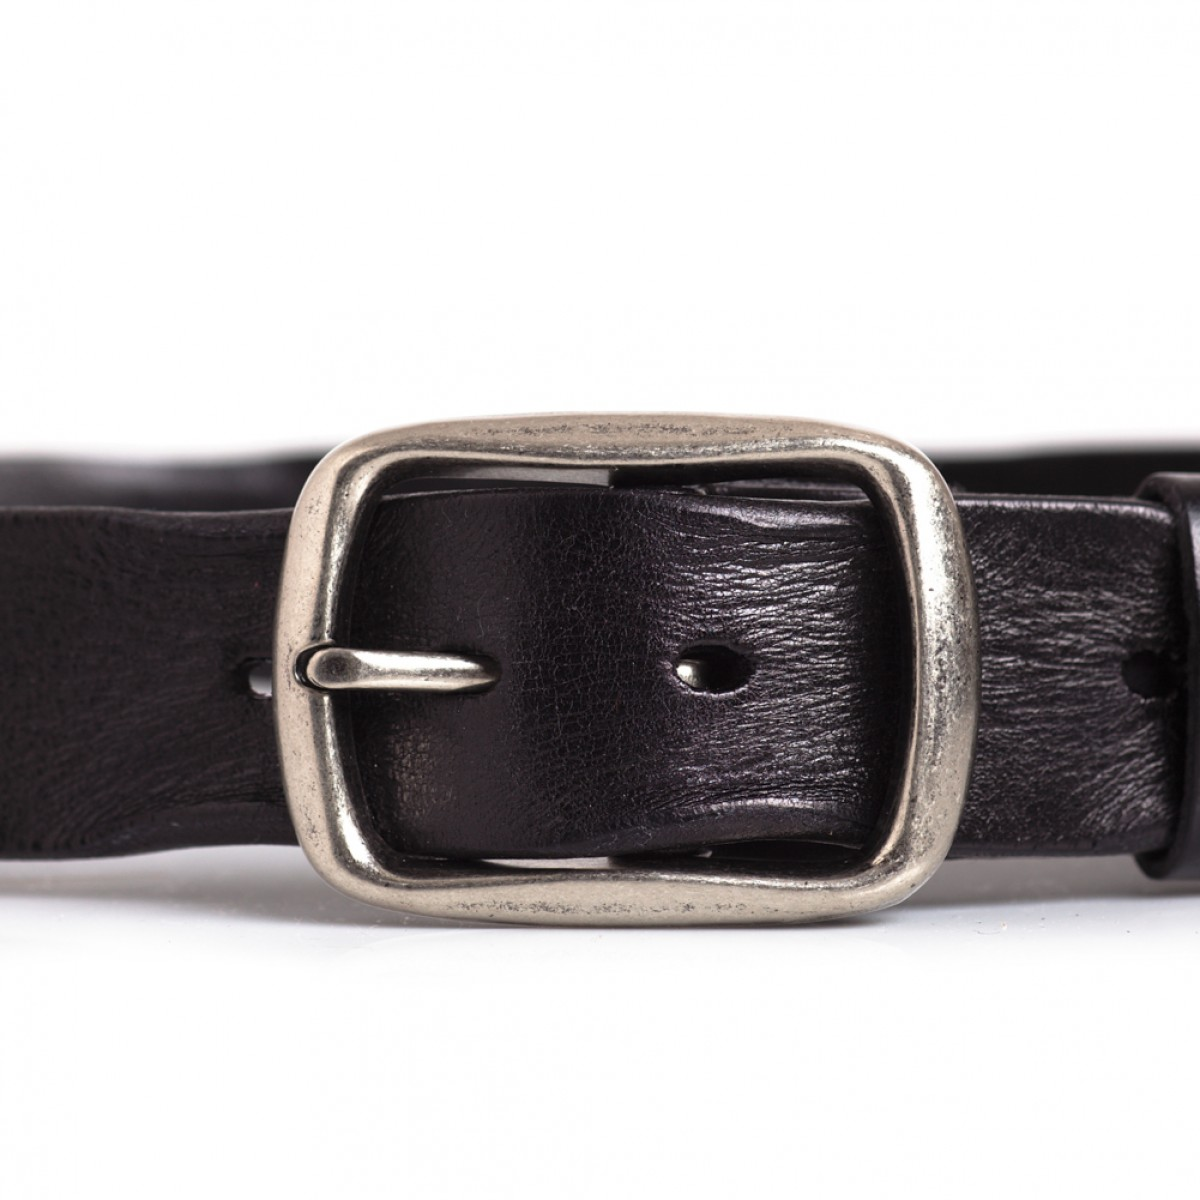 Men's Lifetime Leather Black Buckle Belt $ New Colors. Compare Men's Lifetime Leather Black Buckle Belt QuickView. Brown. Men's Authority Figure Garrison Belt $ Compare Men's Authority Figure Garrison Belt QuickView. Brown. Men's Ranchero Western Belt $